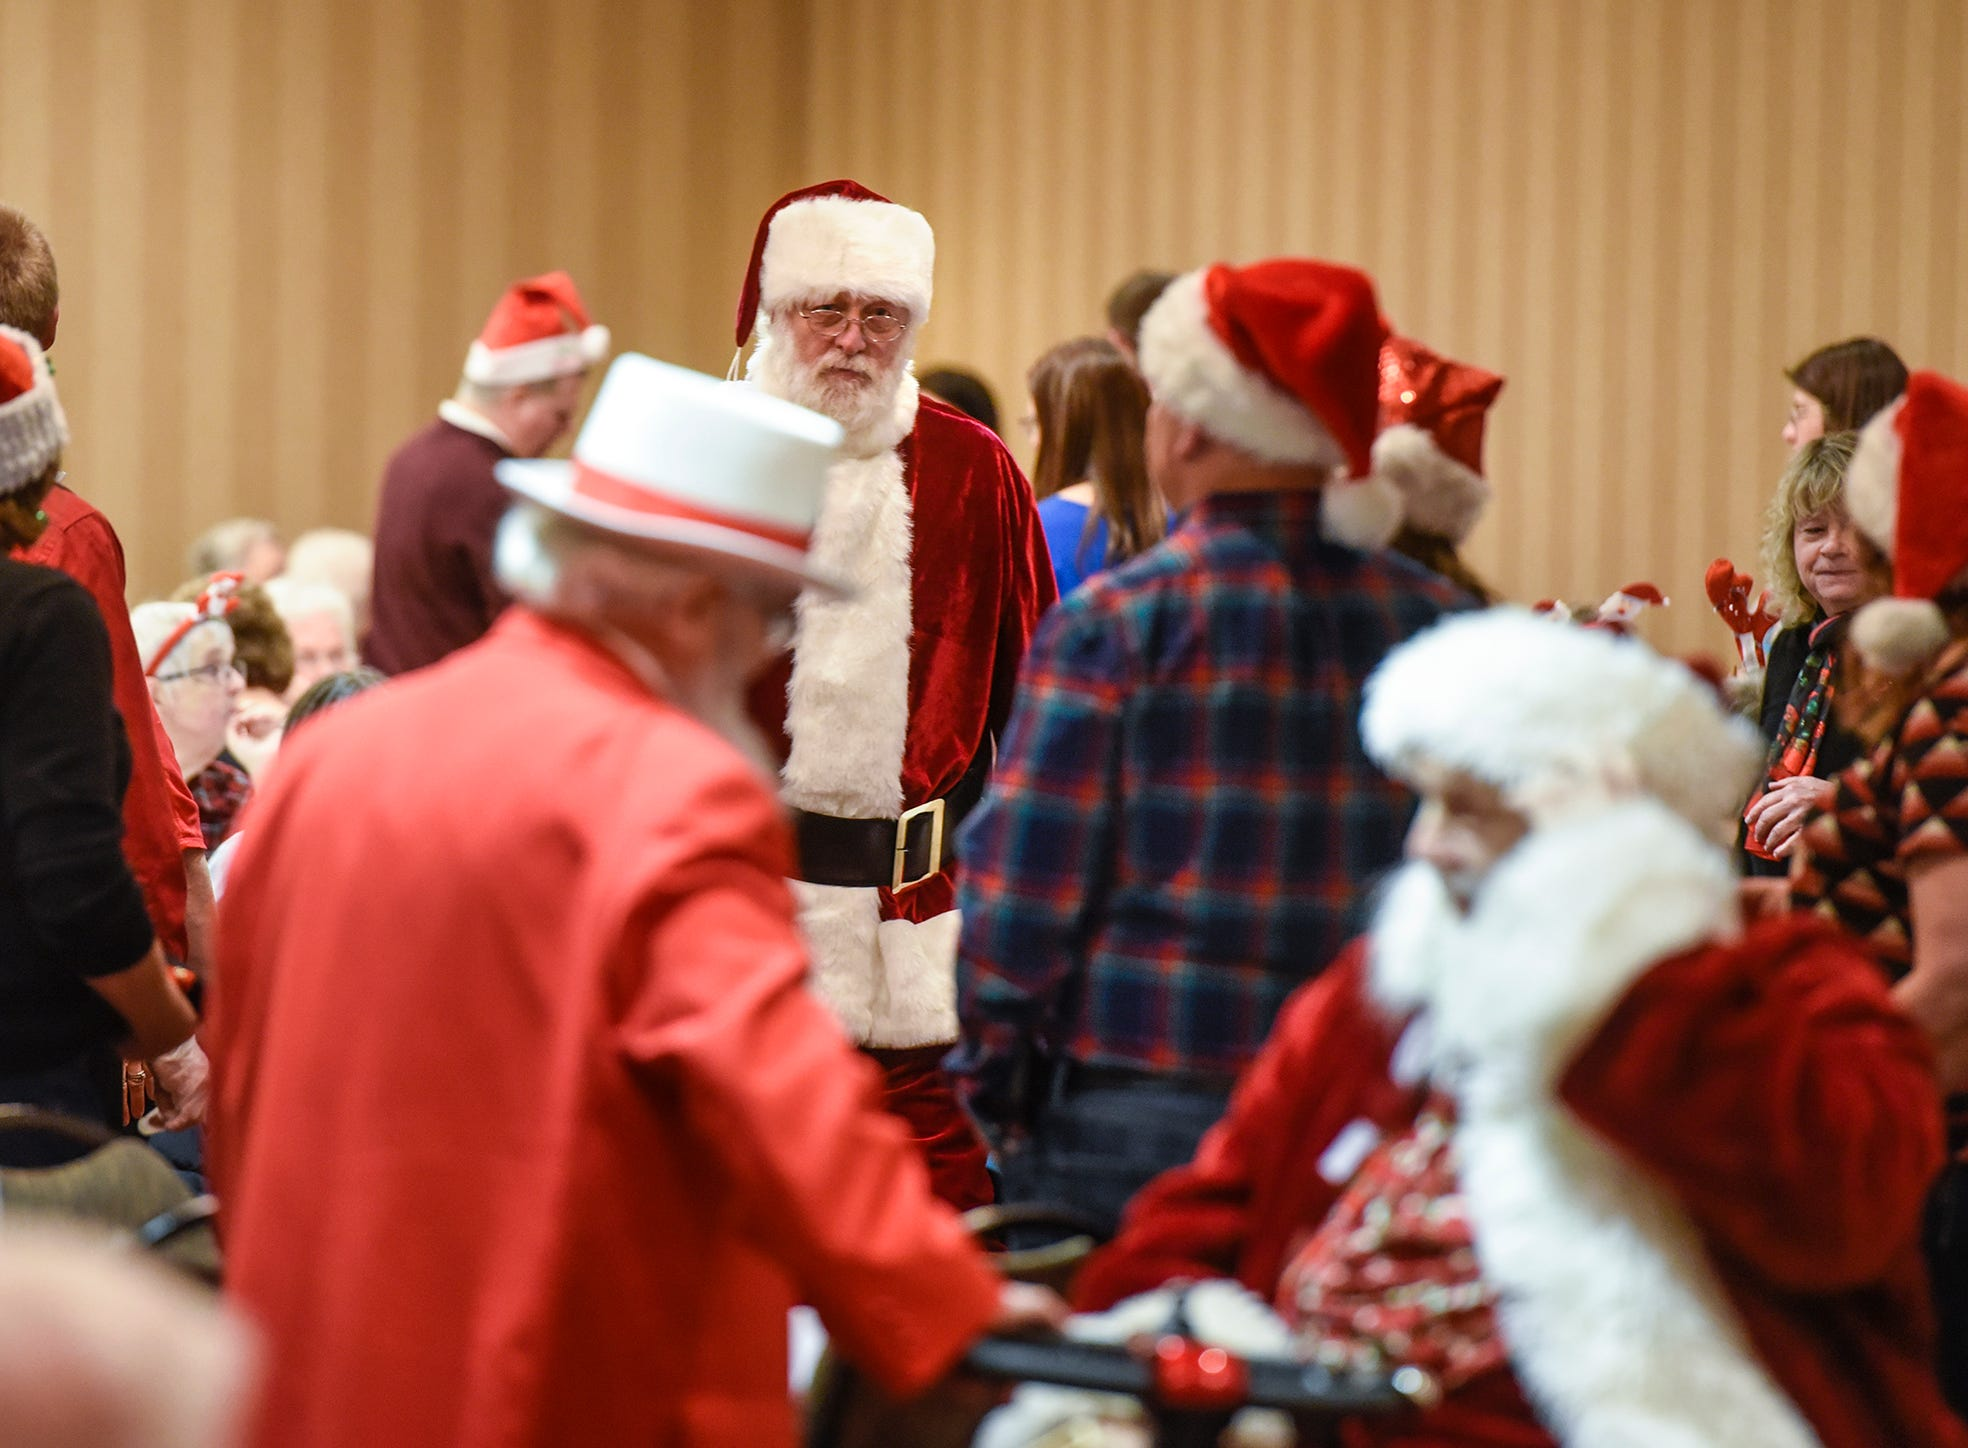 Santas work the room as people take their seats for the Dinner with Santa event Monday, Dec. 17, in St. Cloud.